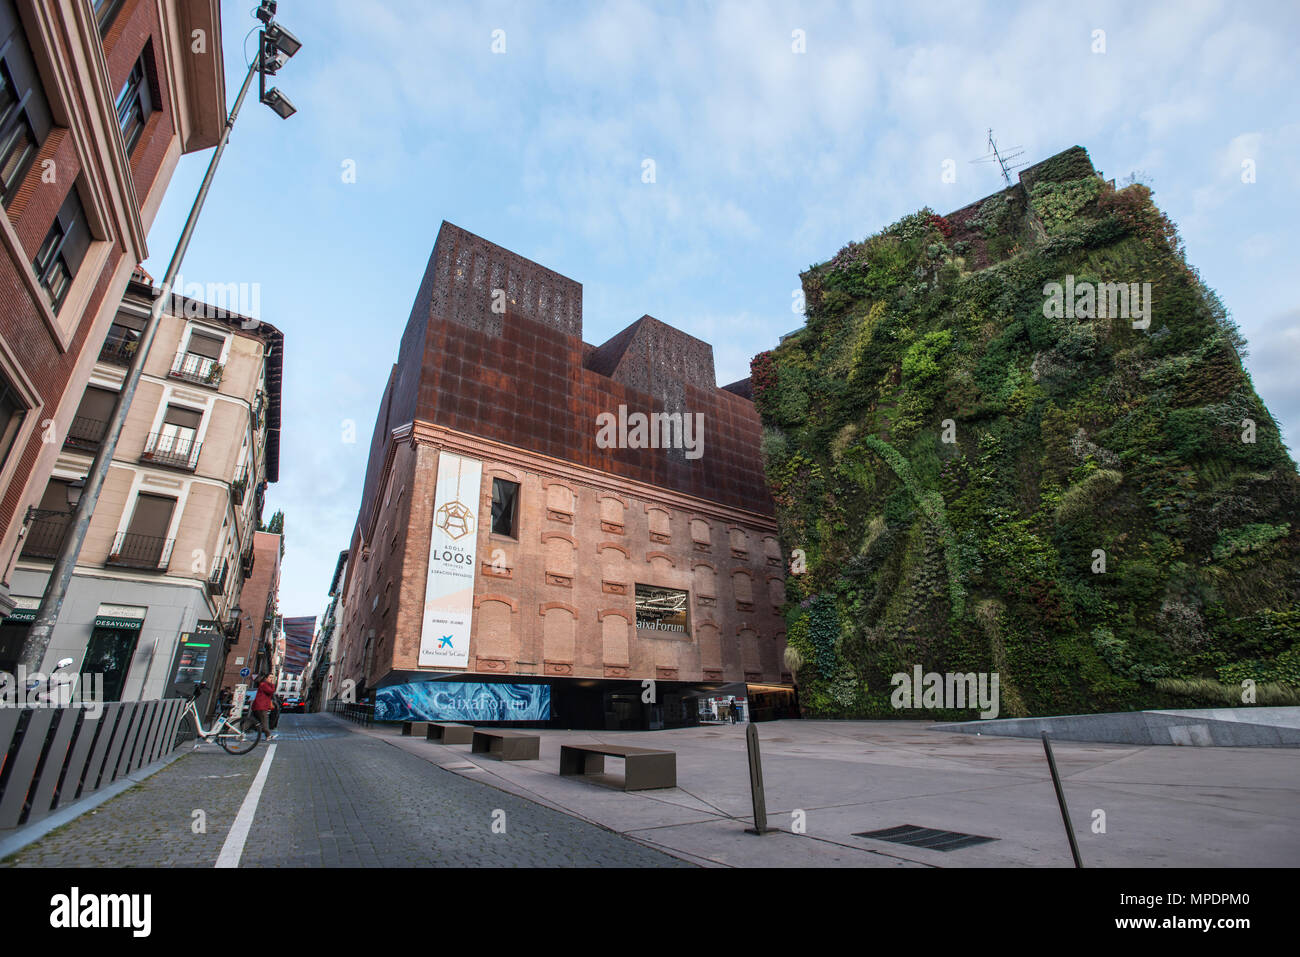 Caixa Forum building in downtown Madrid Stock Photo: 185929296 - Alamy